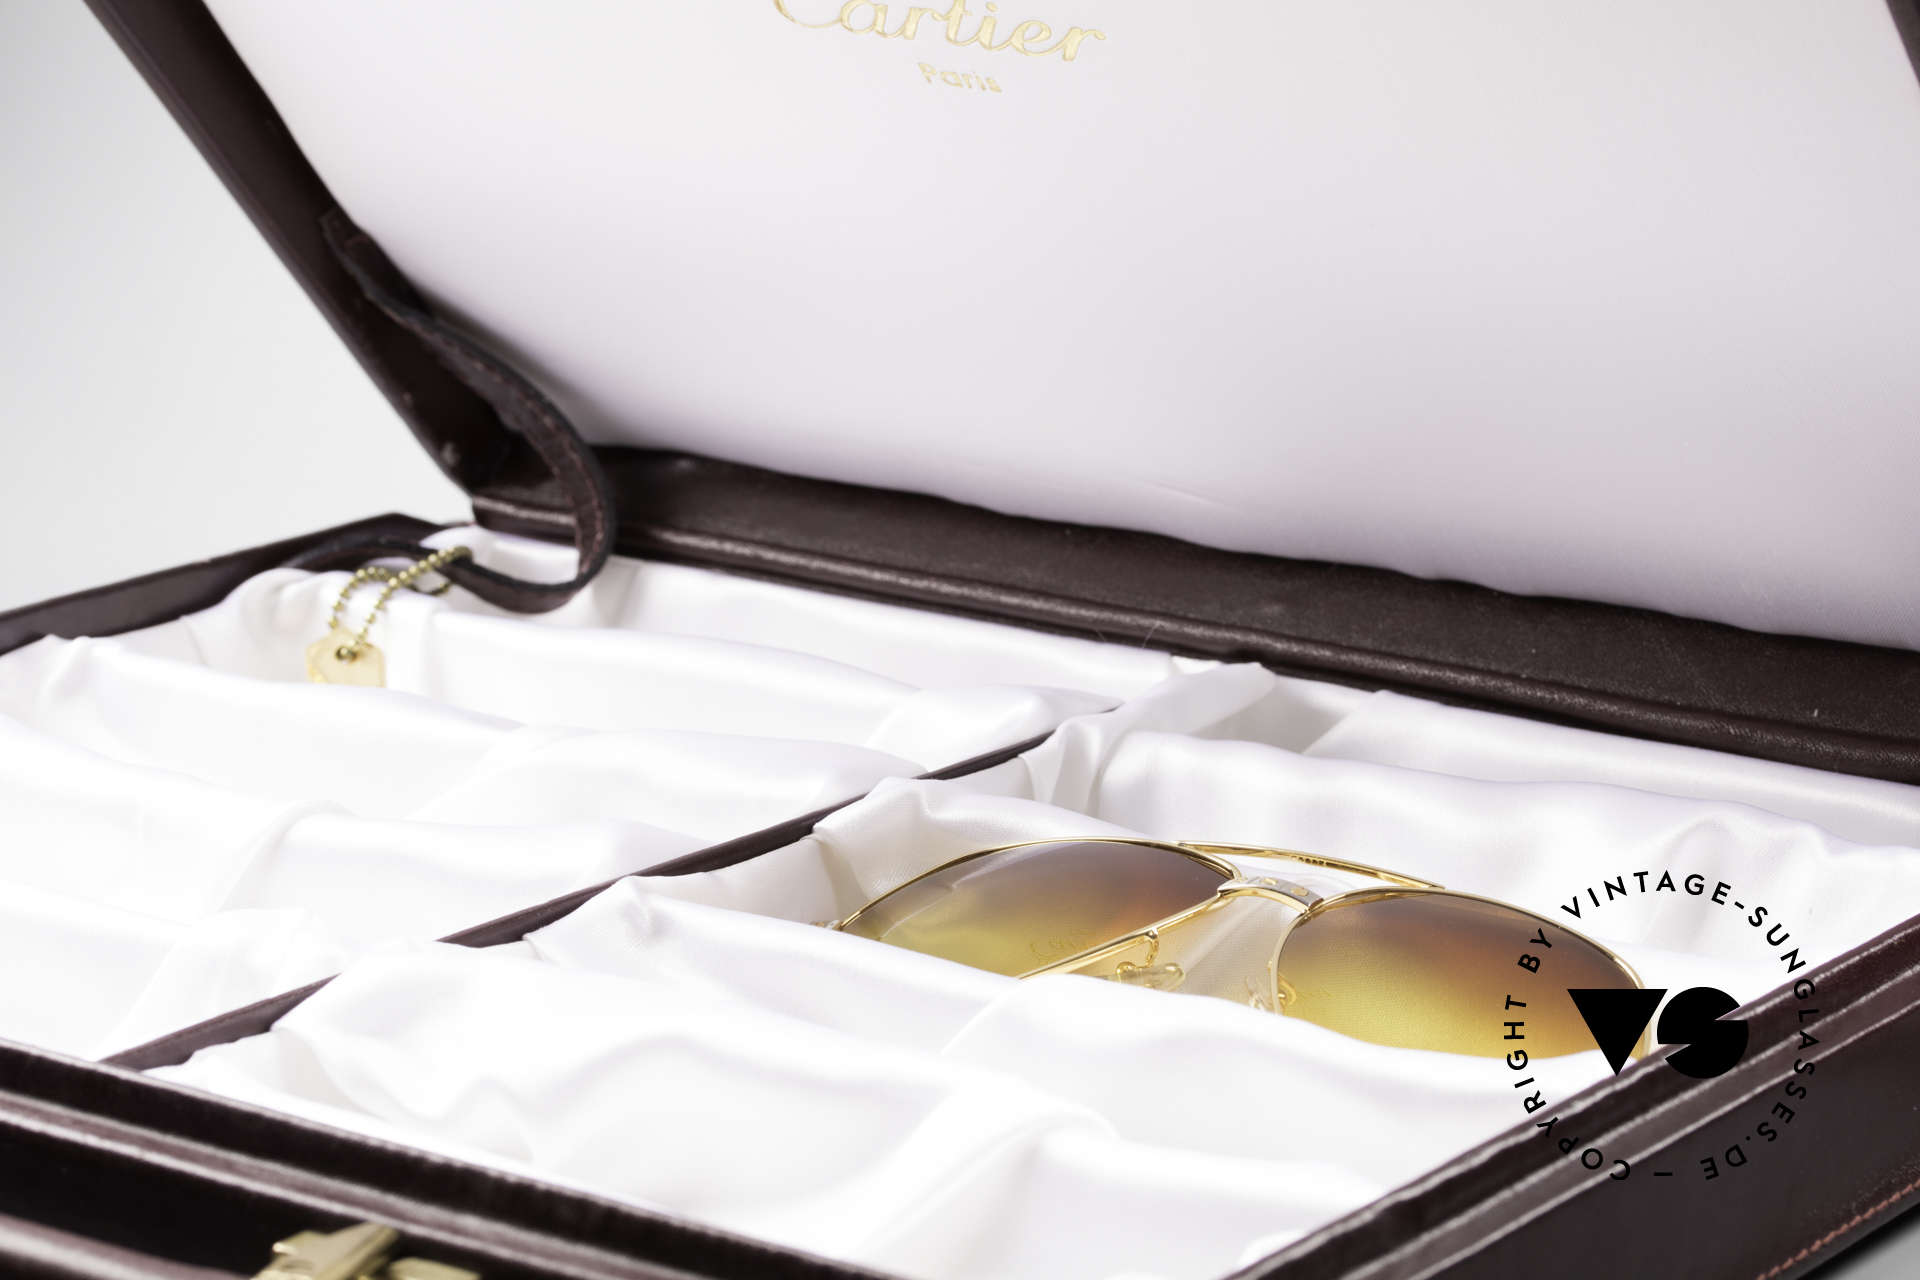 Cartier_ Case For 10 Glasses For all vintage Cartiers Frames, but the sunglasses ARE NOT PART of this offer, Made for Men and Women